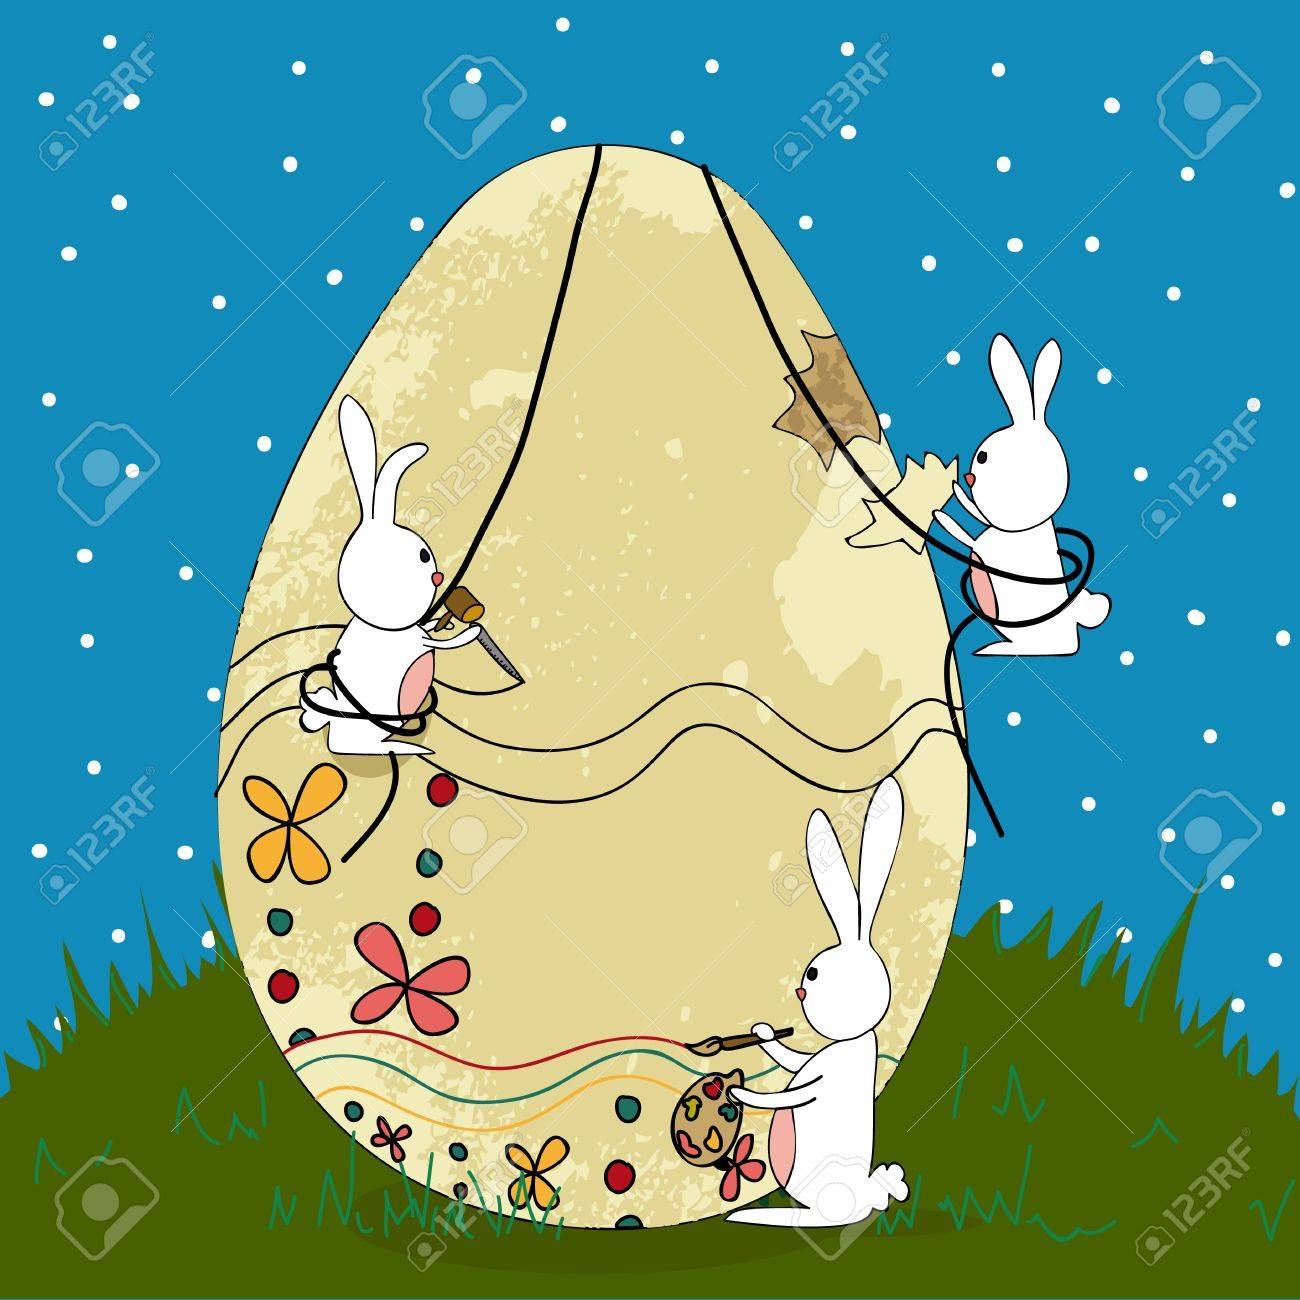 Decorative Easter egg under construction by bunnies teamwork. illustration layered for easy manipulation and custom coloring. Stock Vector - 18221232